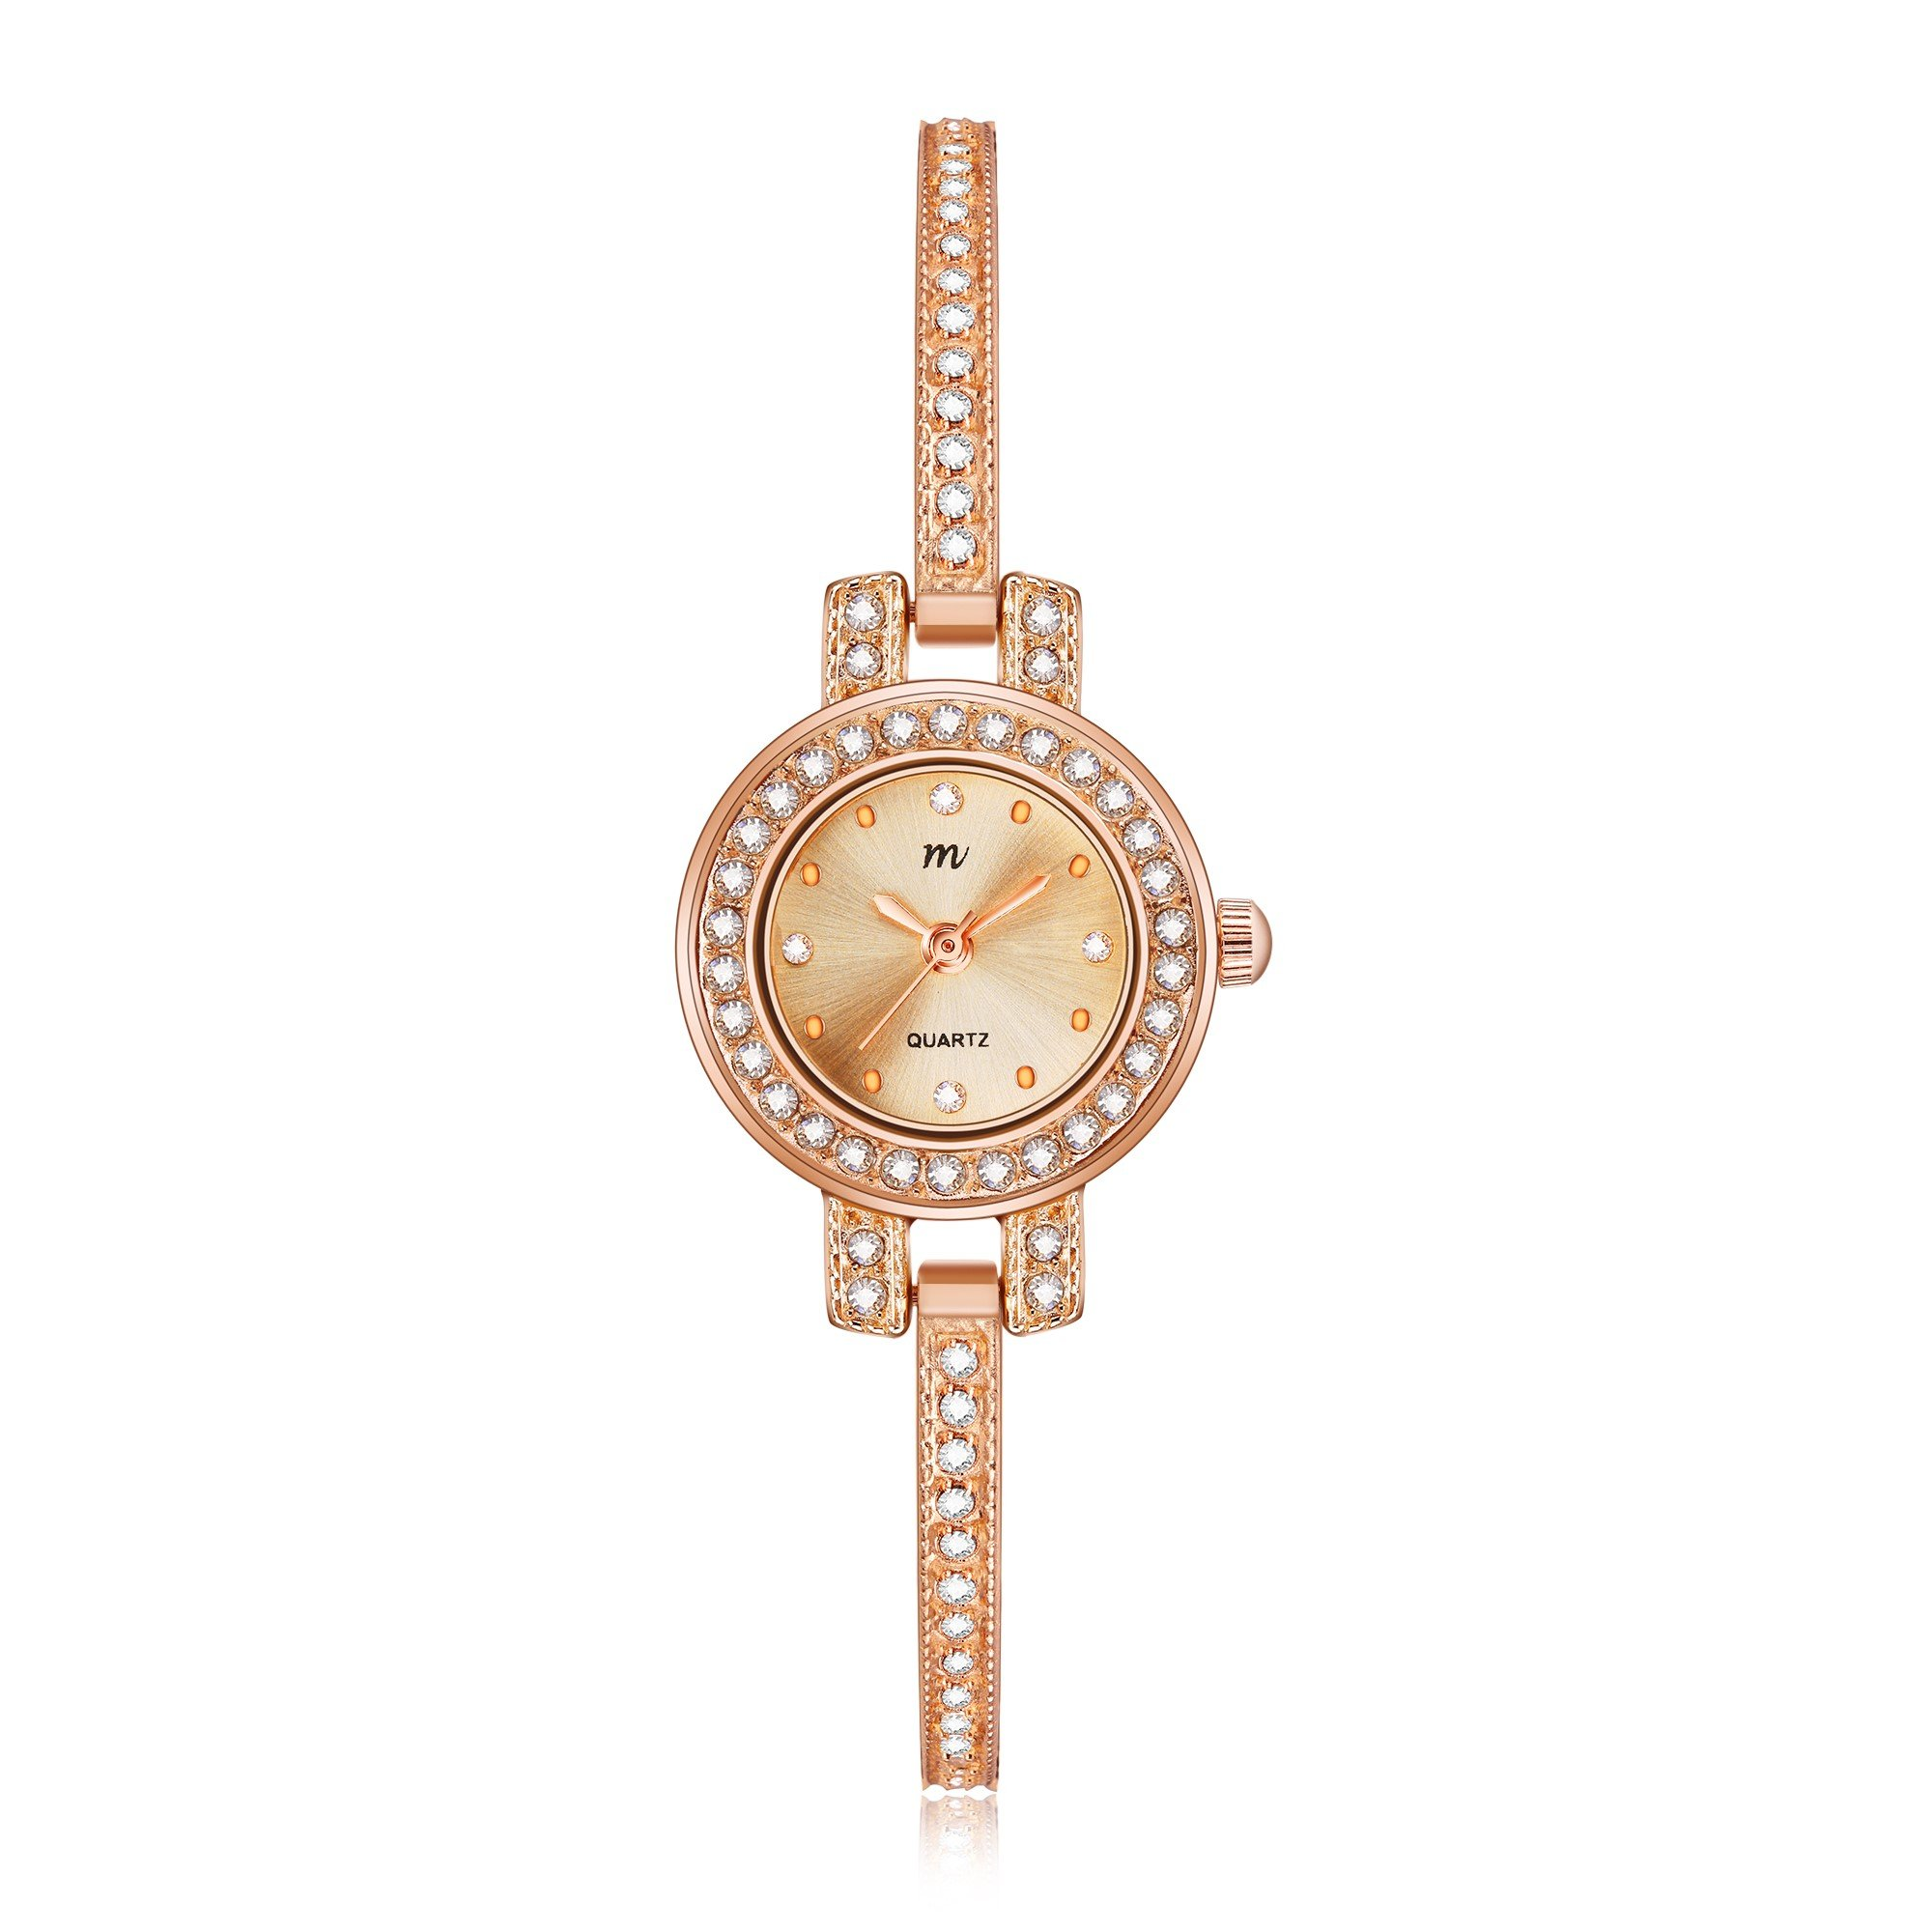 MW Women's 'Tiny Charm' Quartz Rose Gold Casual Wrist Watch, Small Round Case and Bangle with Crystal, Fashion Dress Bracelet Watches for Women Ladies